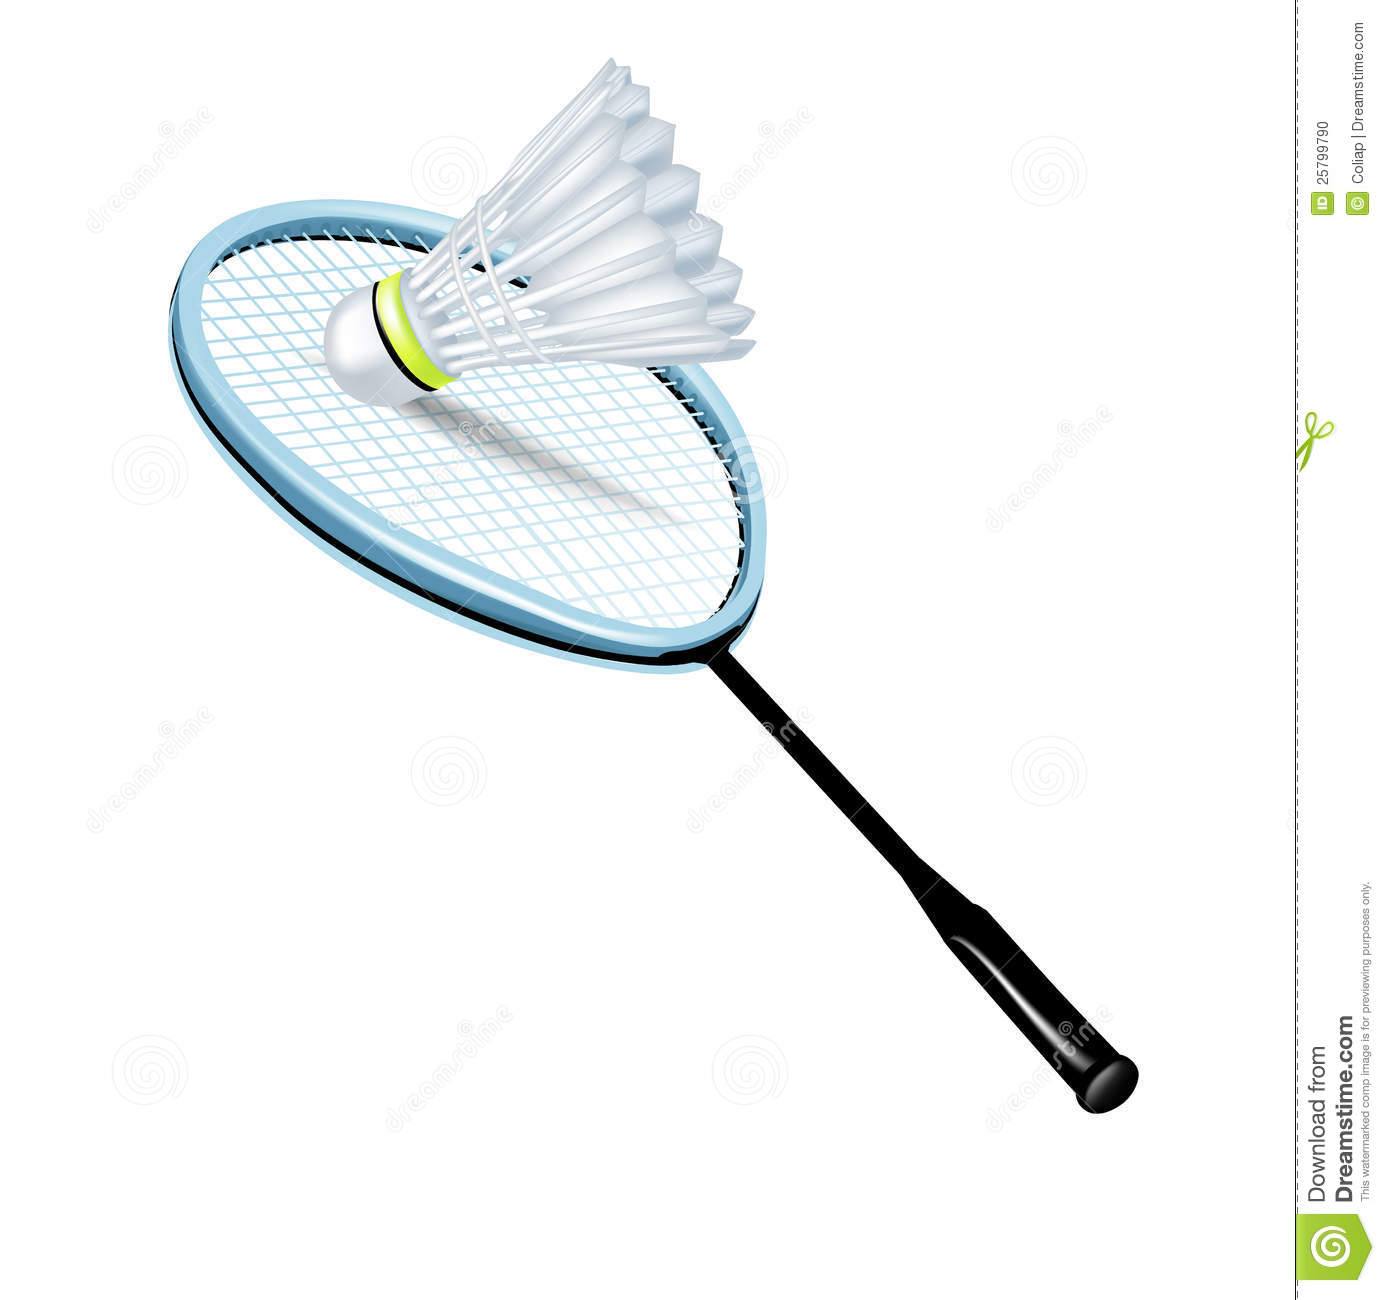 Shuttlecock and stock vector. Racket clipart badminton net banner transparent download